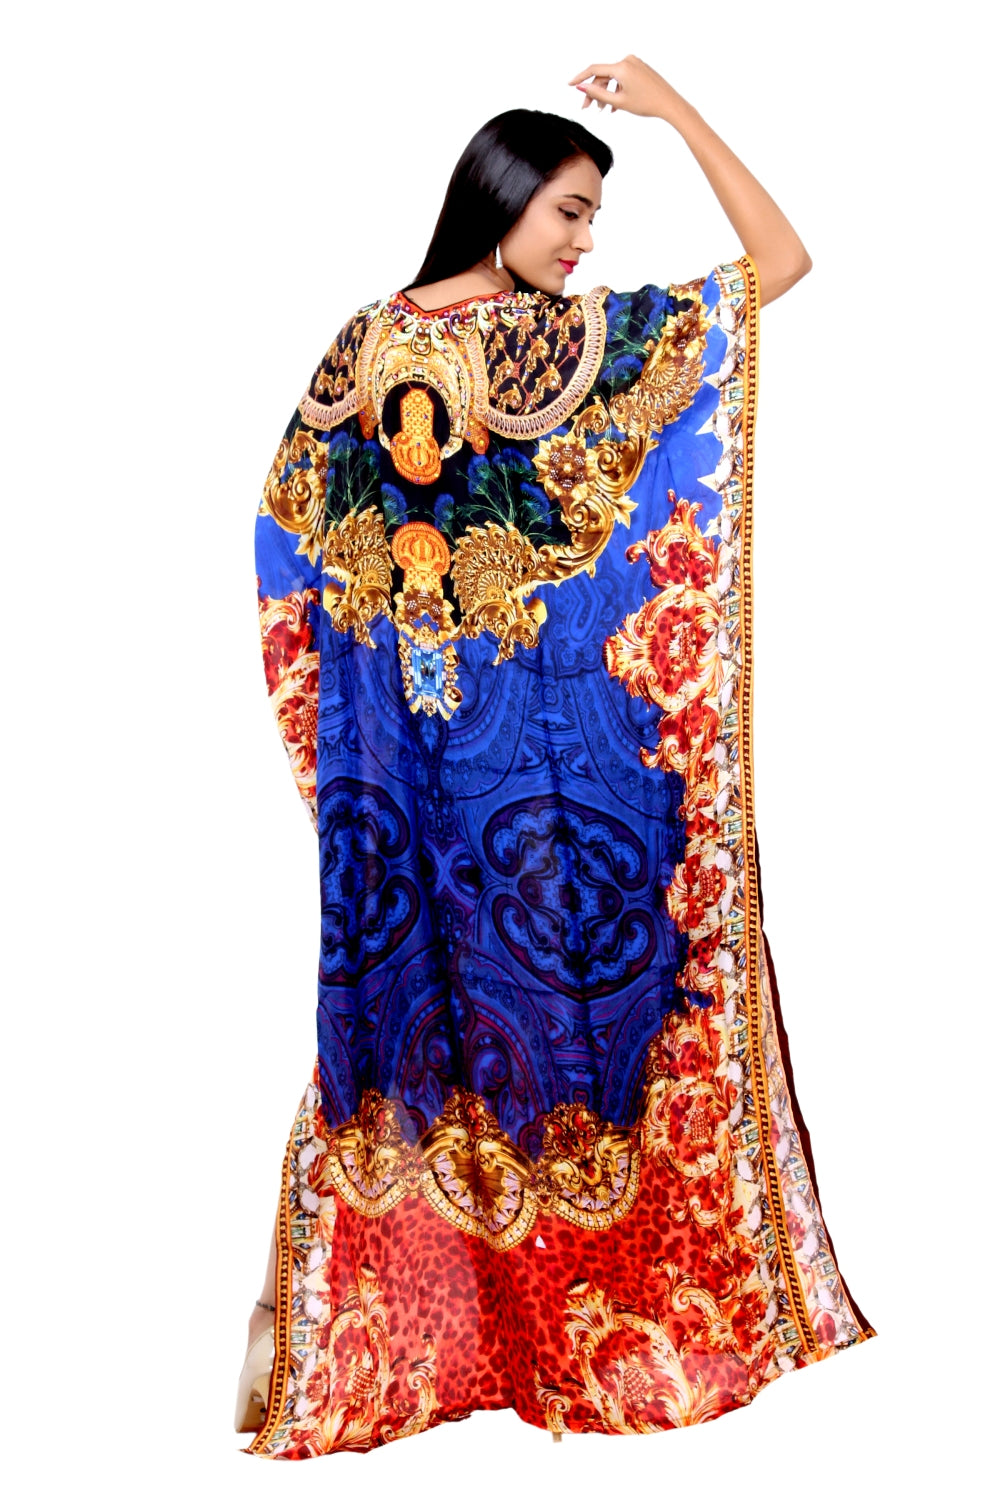 Royal Queen cover up ladies classic silk kaftan night party gown with attractive baroque print in V-neck - Silk kaftan